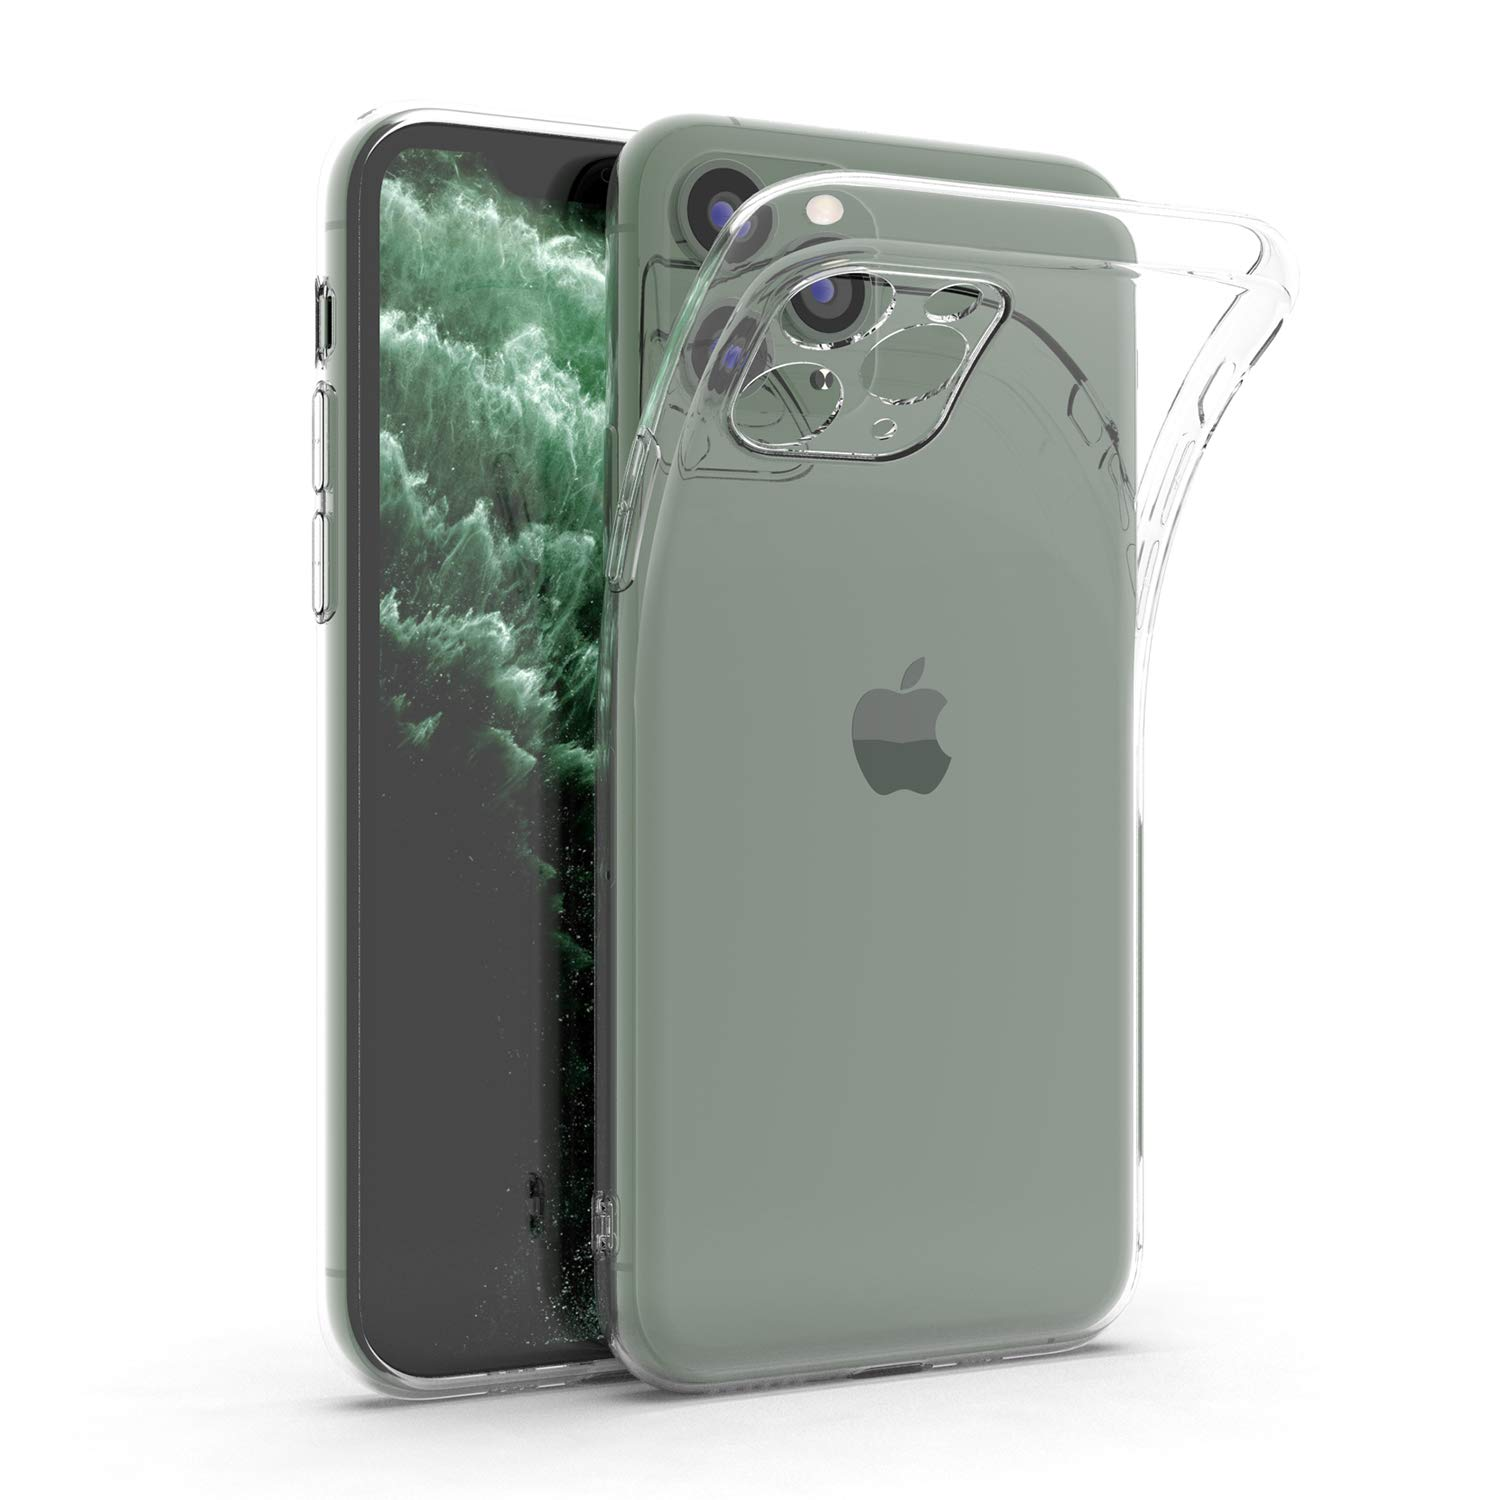 ANHONG Clear iPhone 11 Pro Case, [Enhanced Camera Protection] Slim Fit Ultra-Thin Soft Silicone TPU Gel Phone Cover Case for iPhone 11 Pro 5.8 inch (2019)